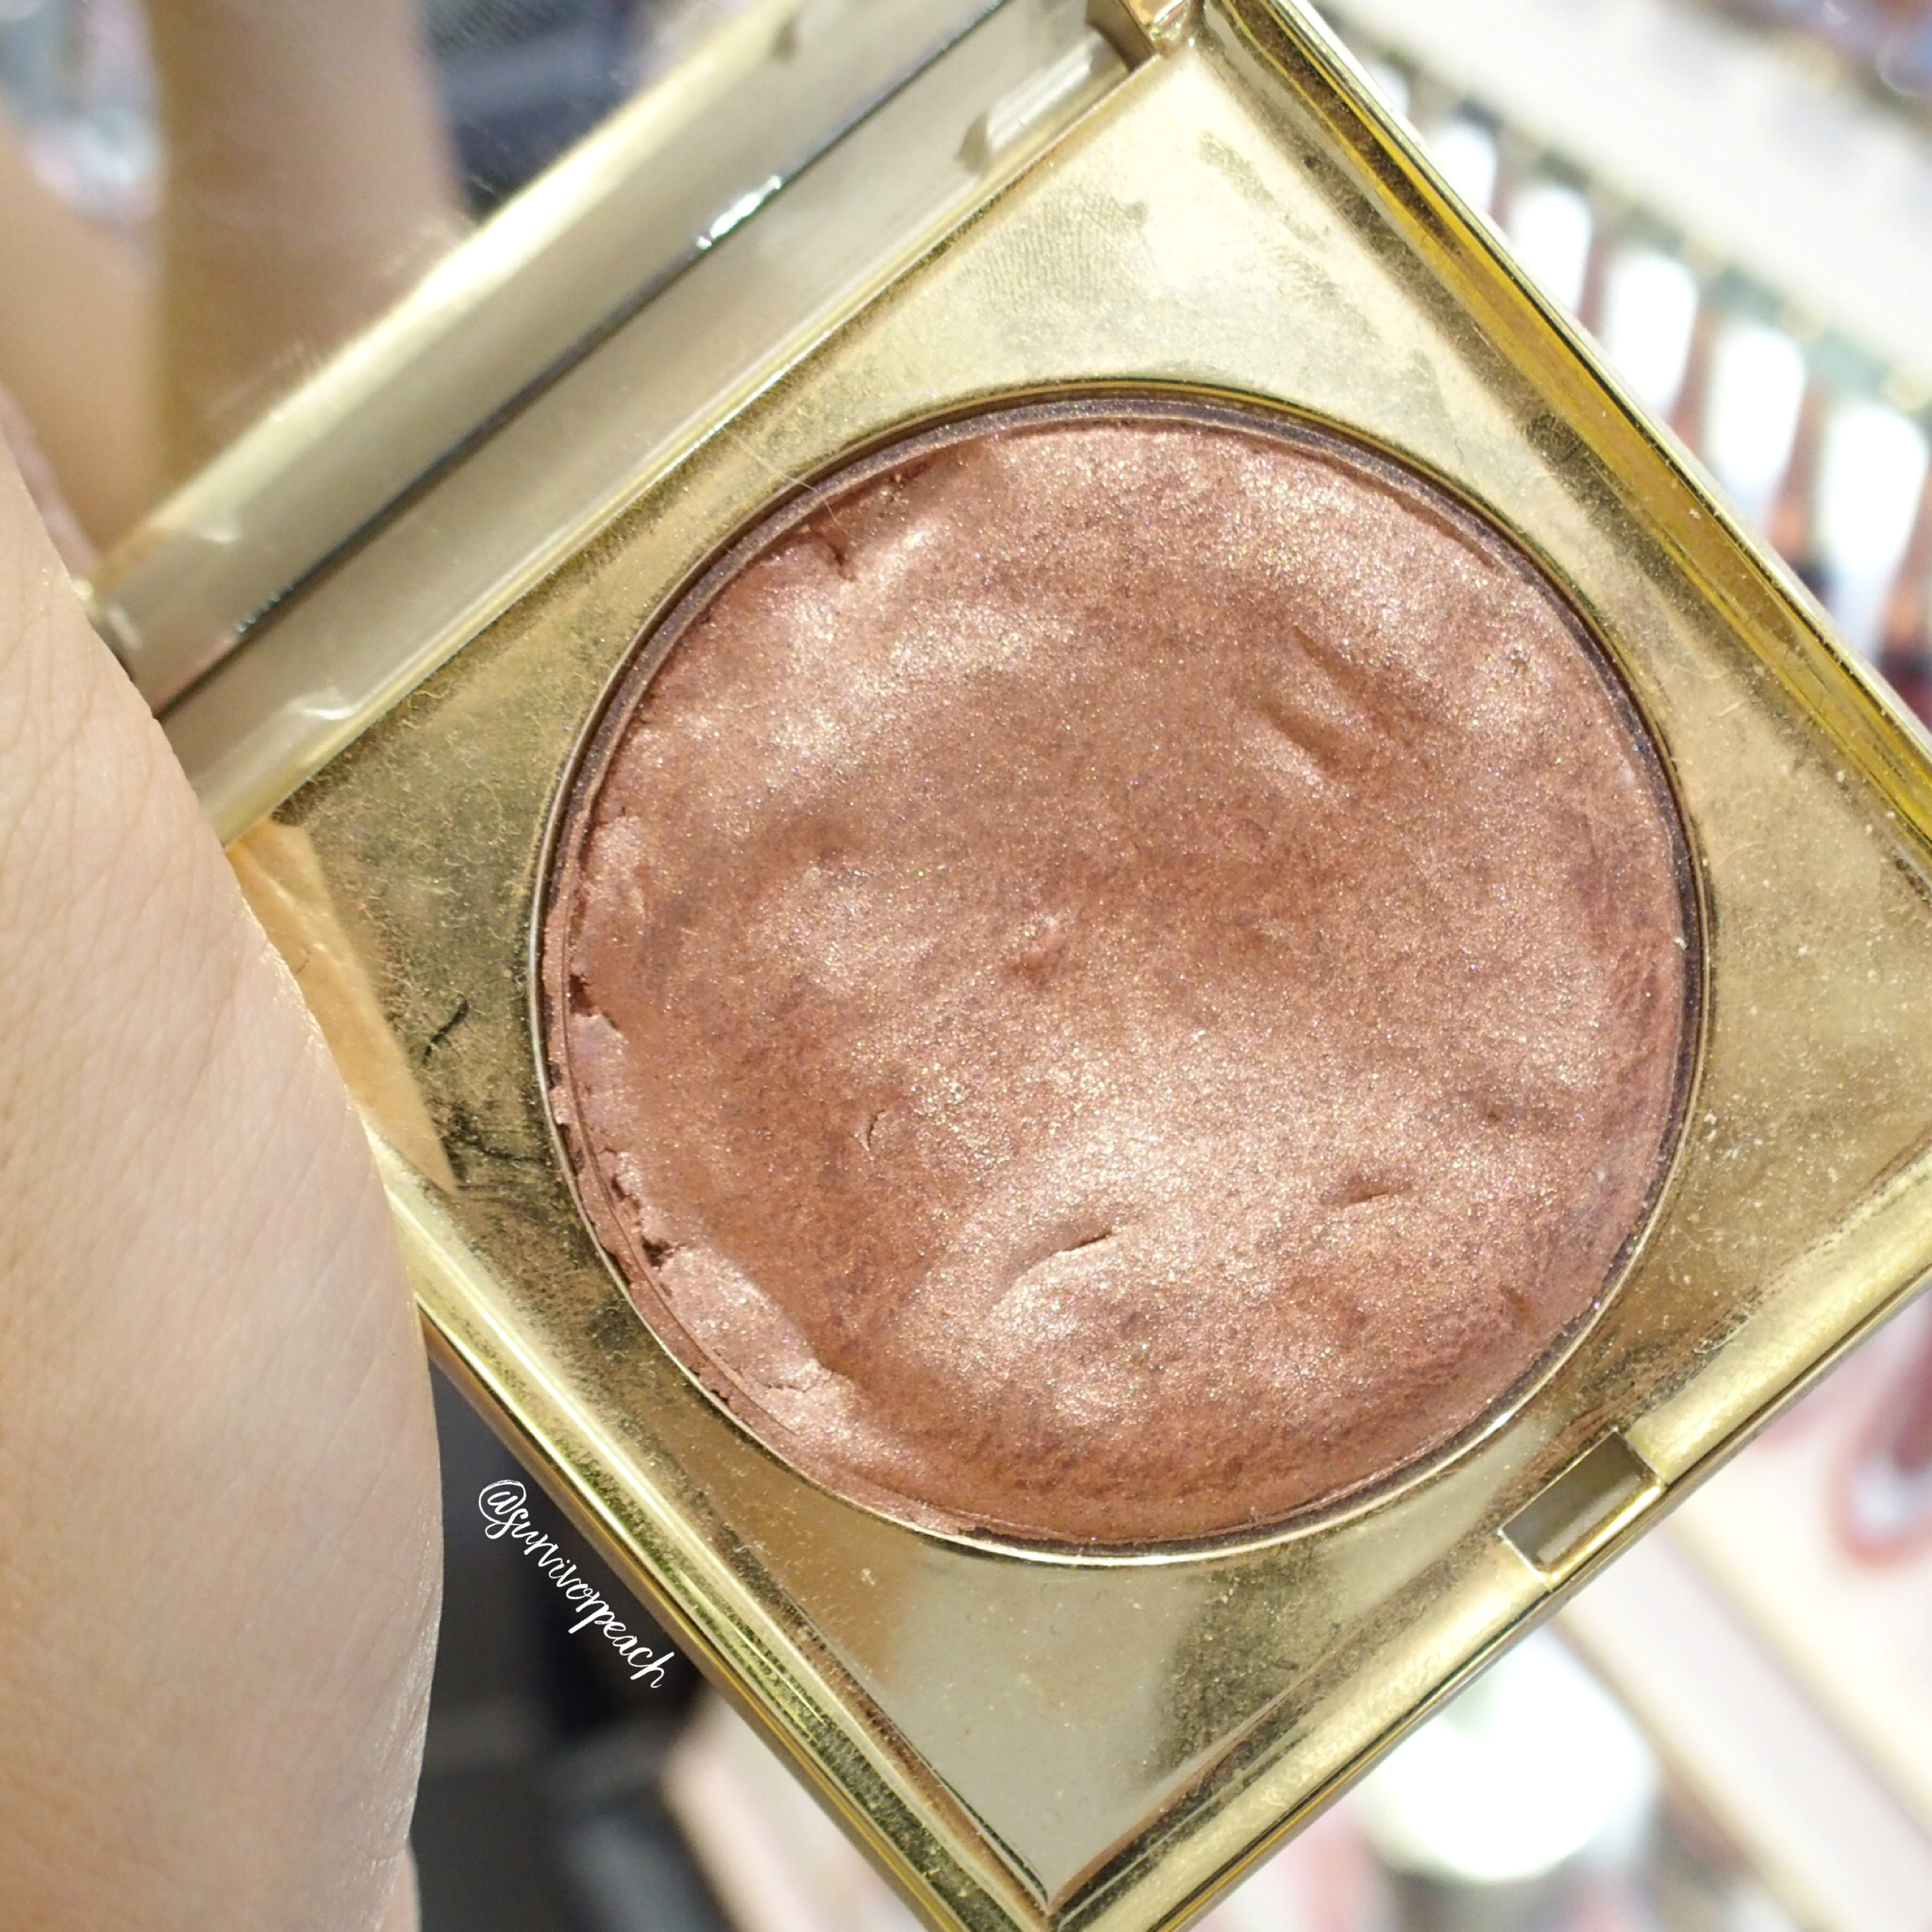 Stila Heavenly Hue Highlighter - Magnificent